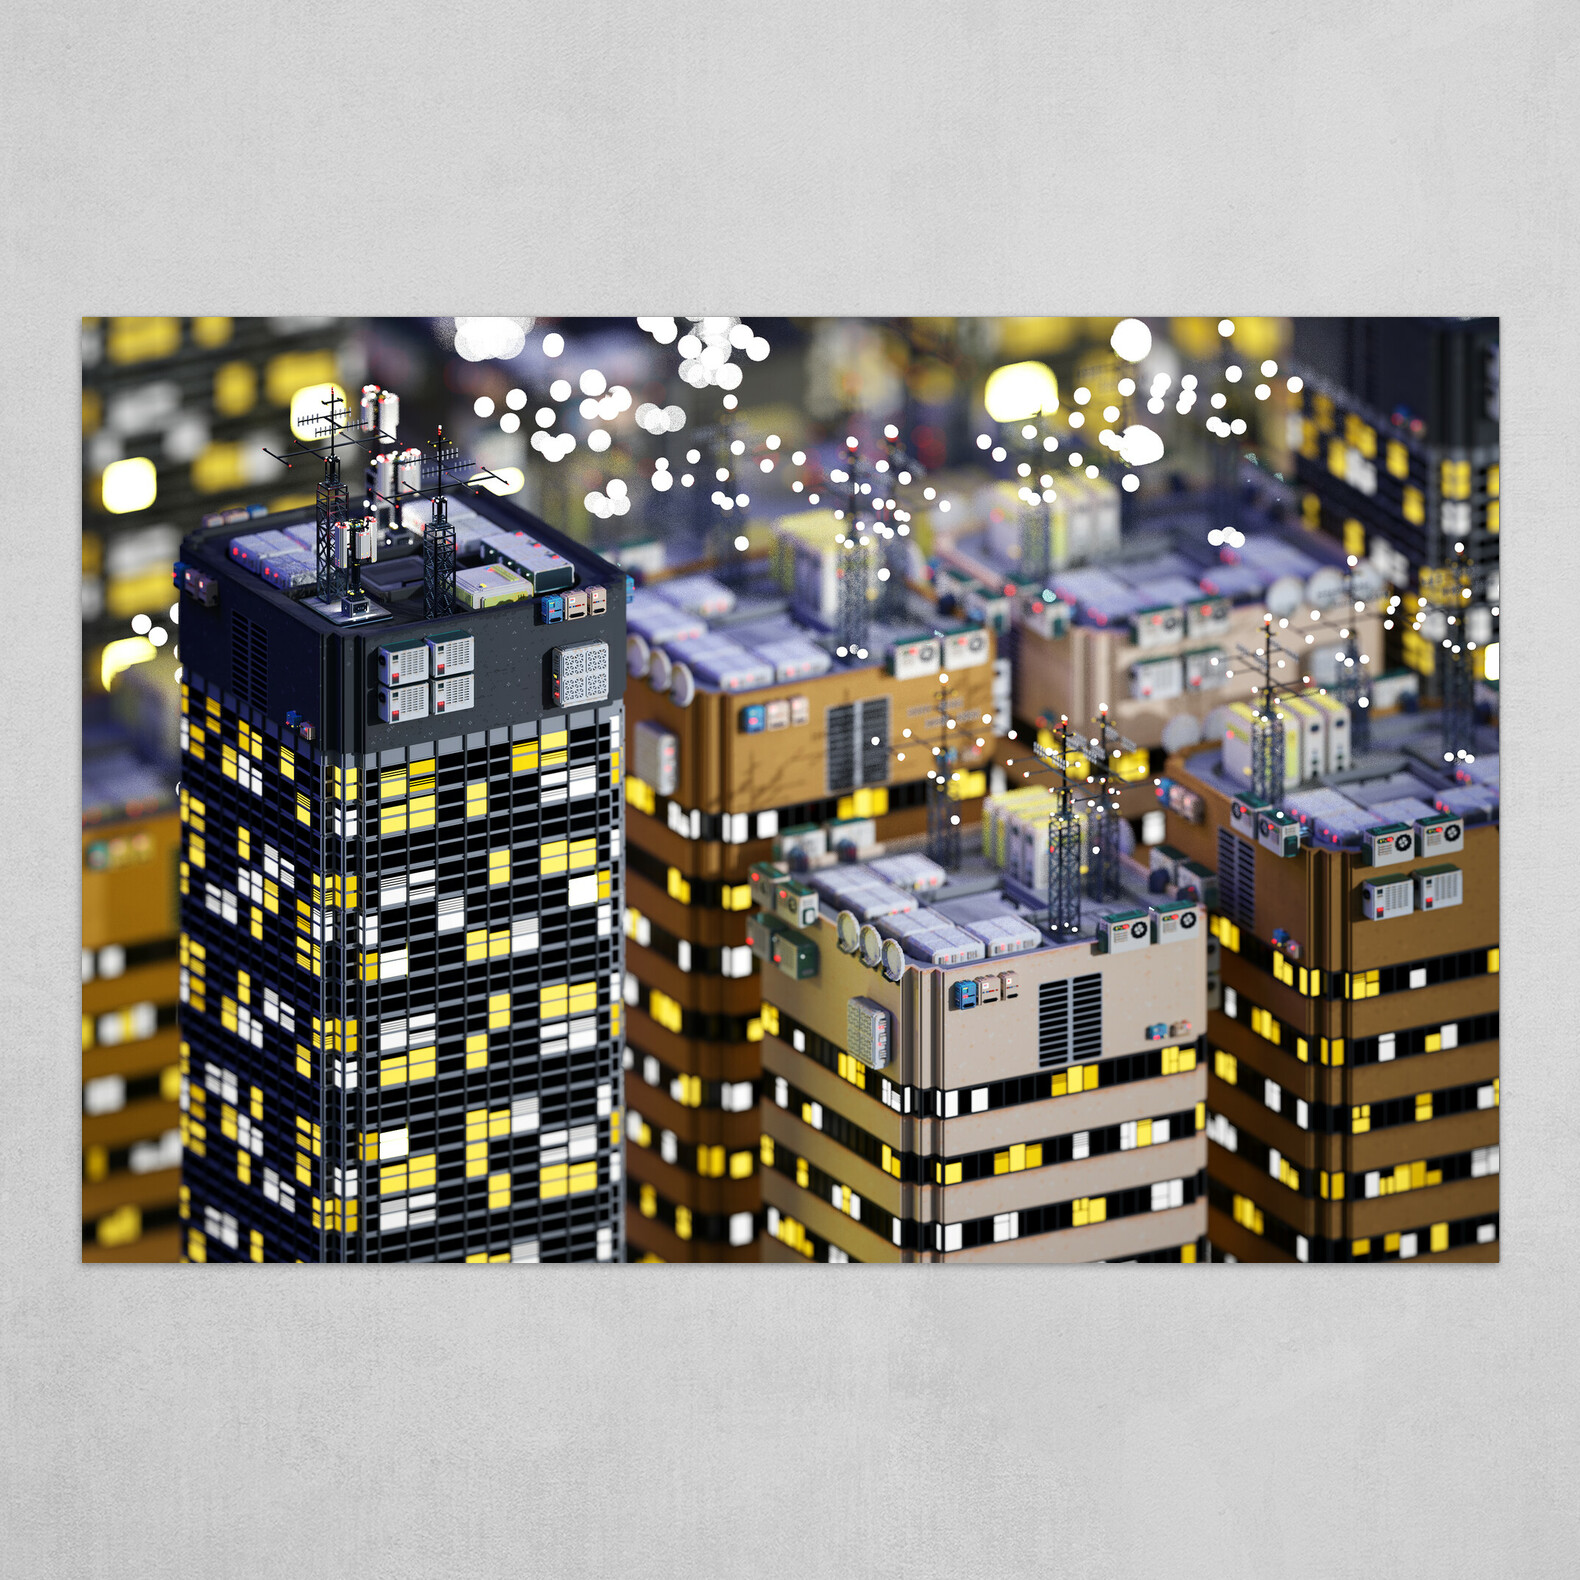 Voxel City n°3 - Night